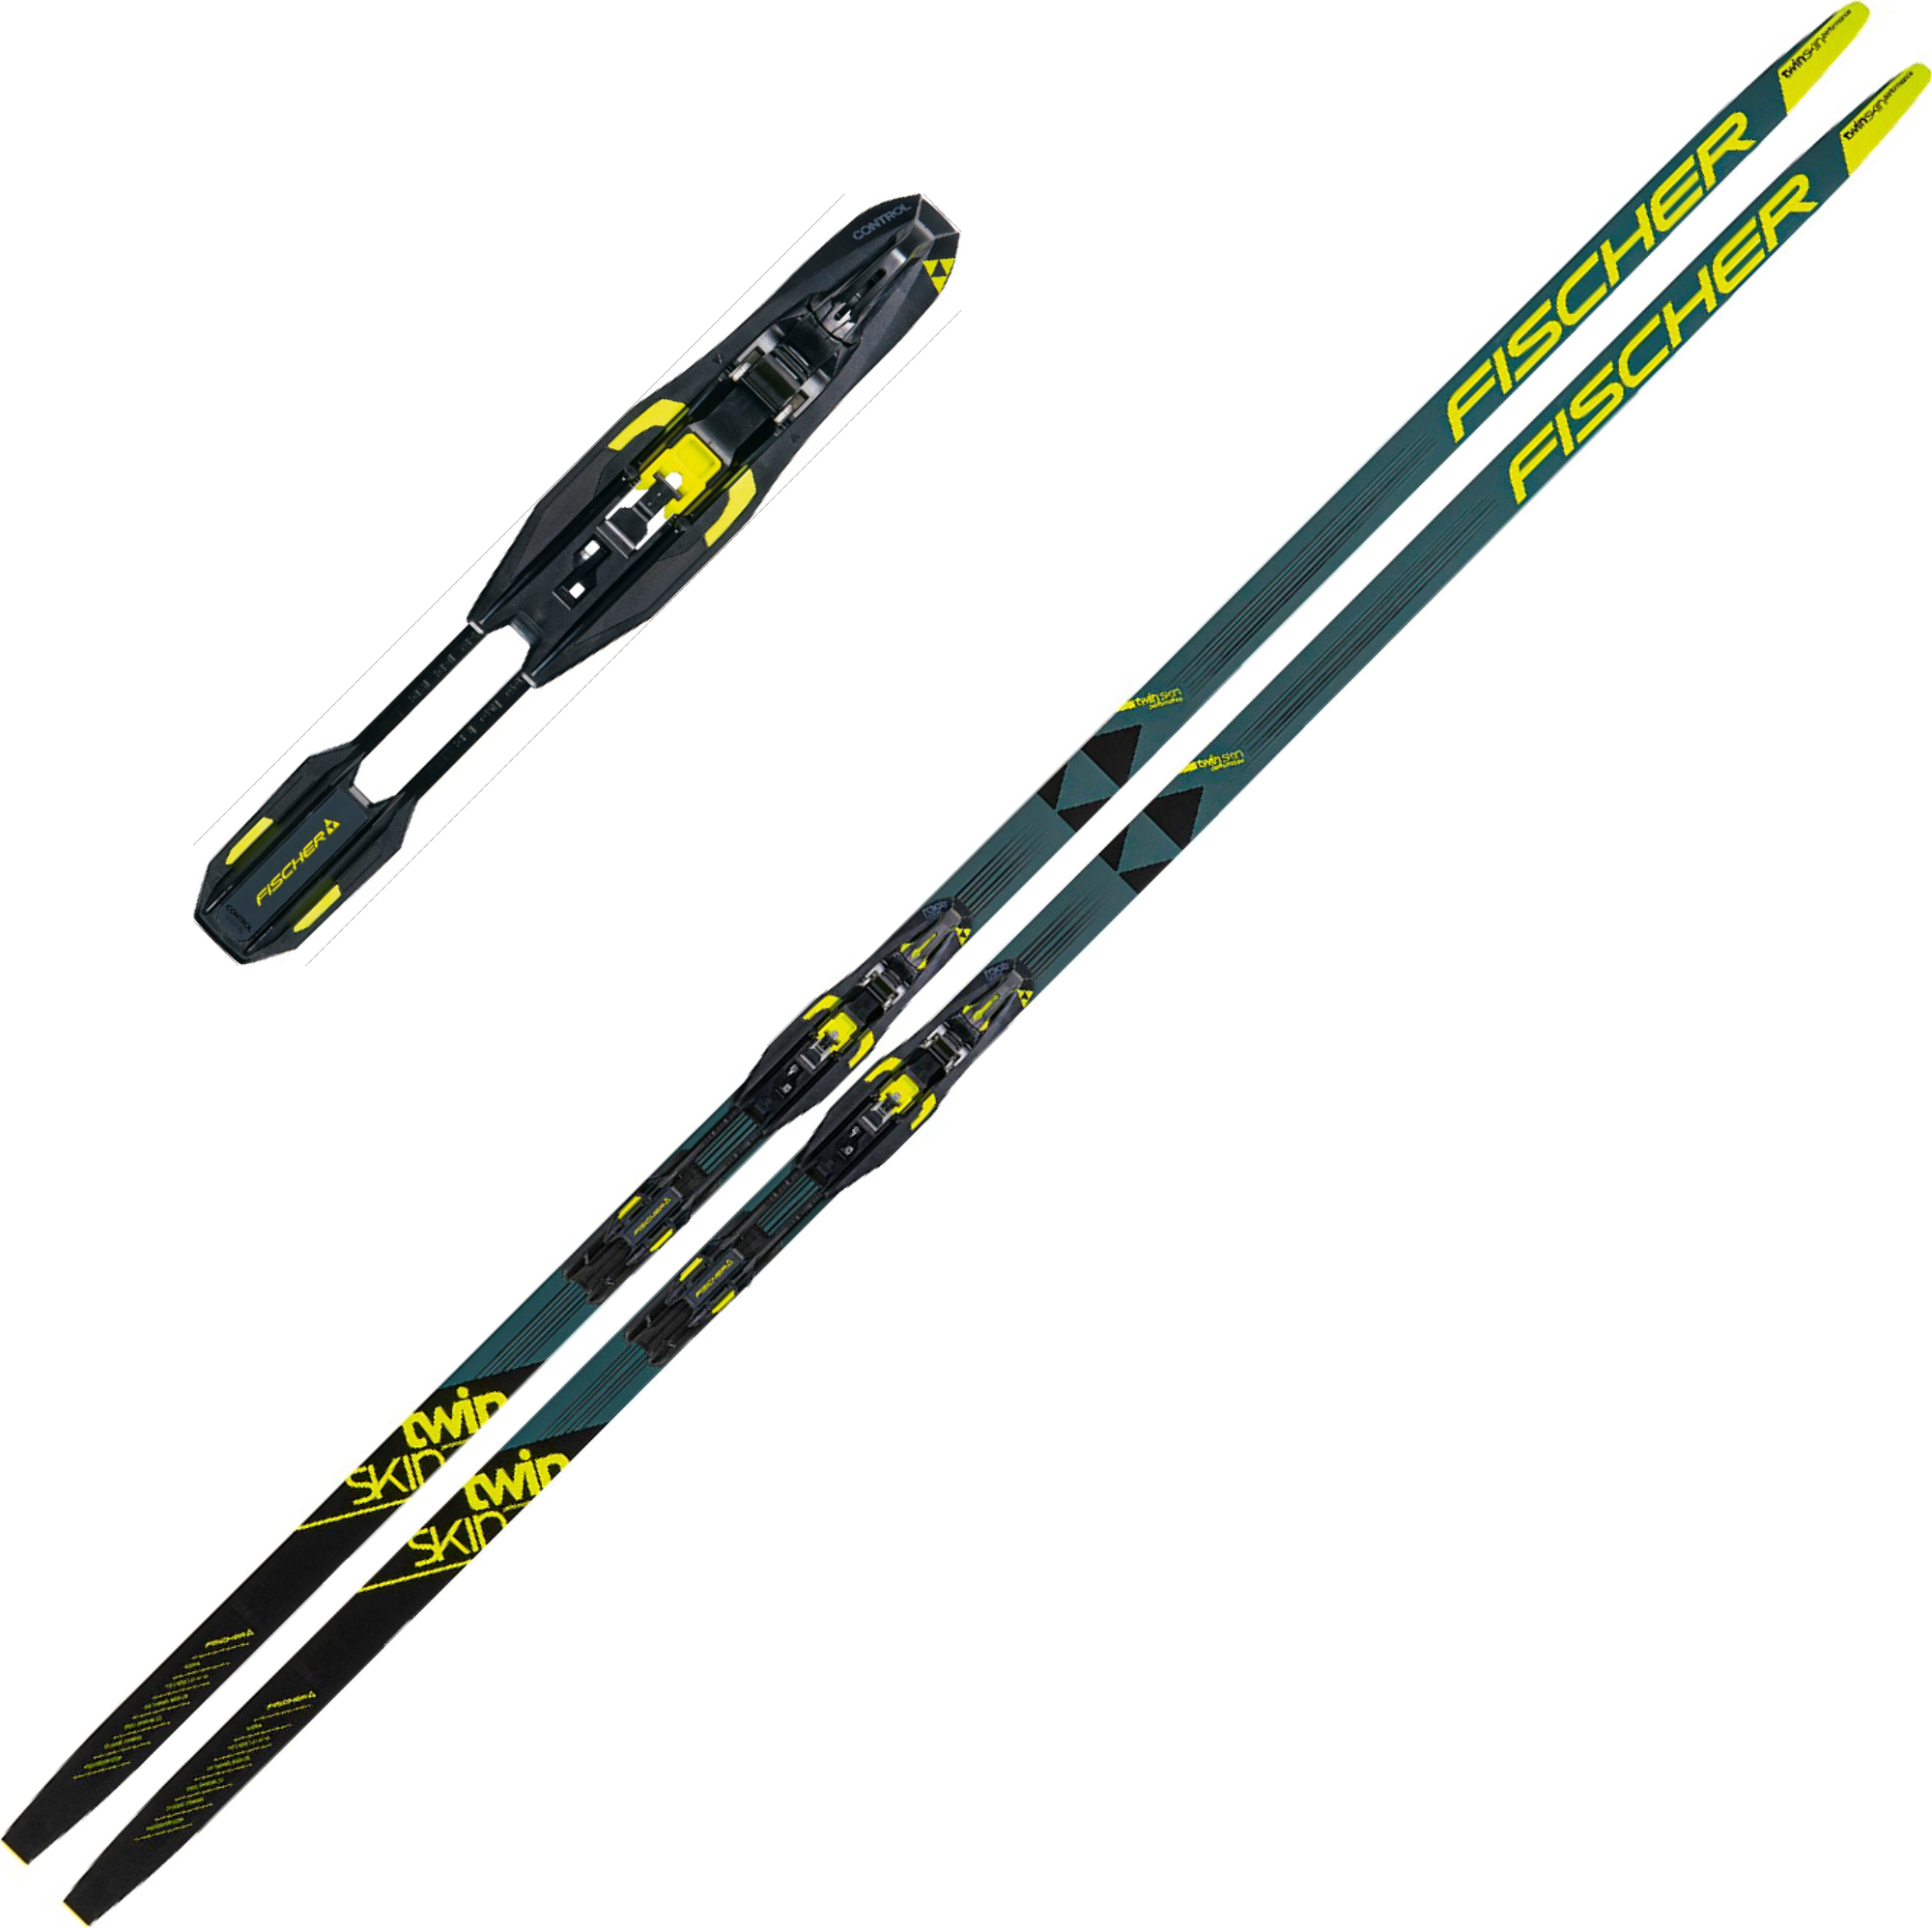 Fischer Twin Skin Performance IFP Medium med Binding + 20% på TCL klassisk skistøvel